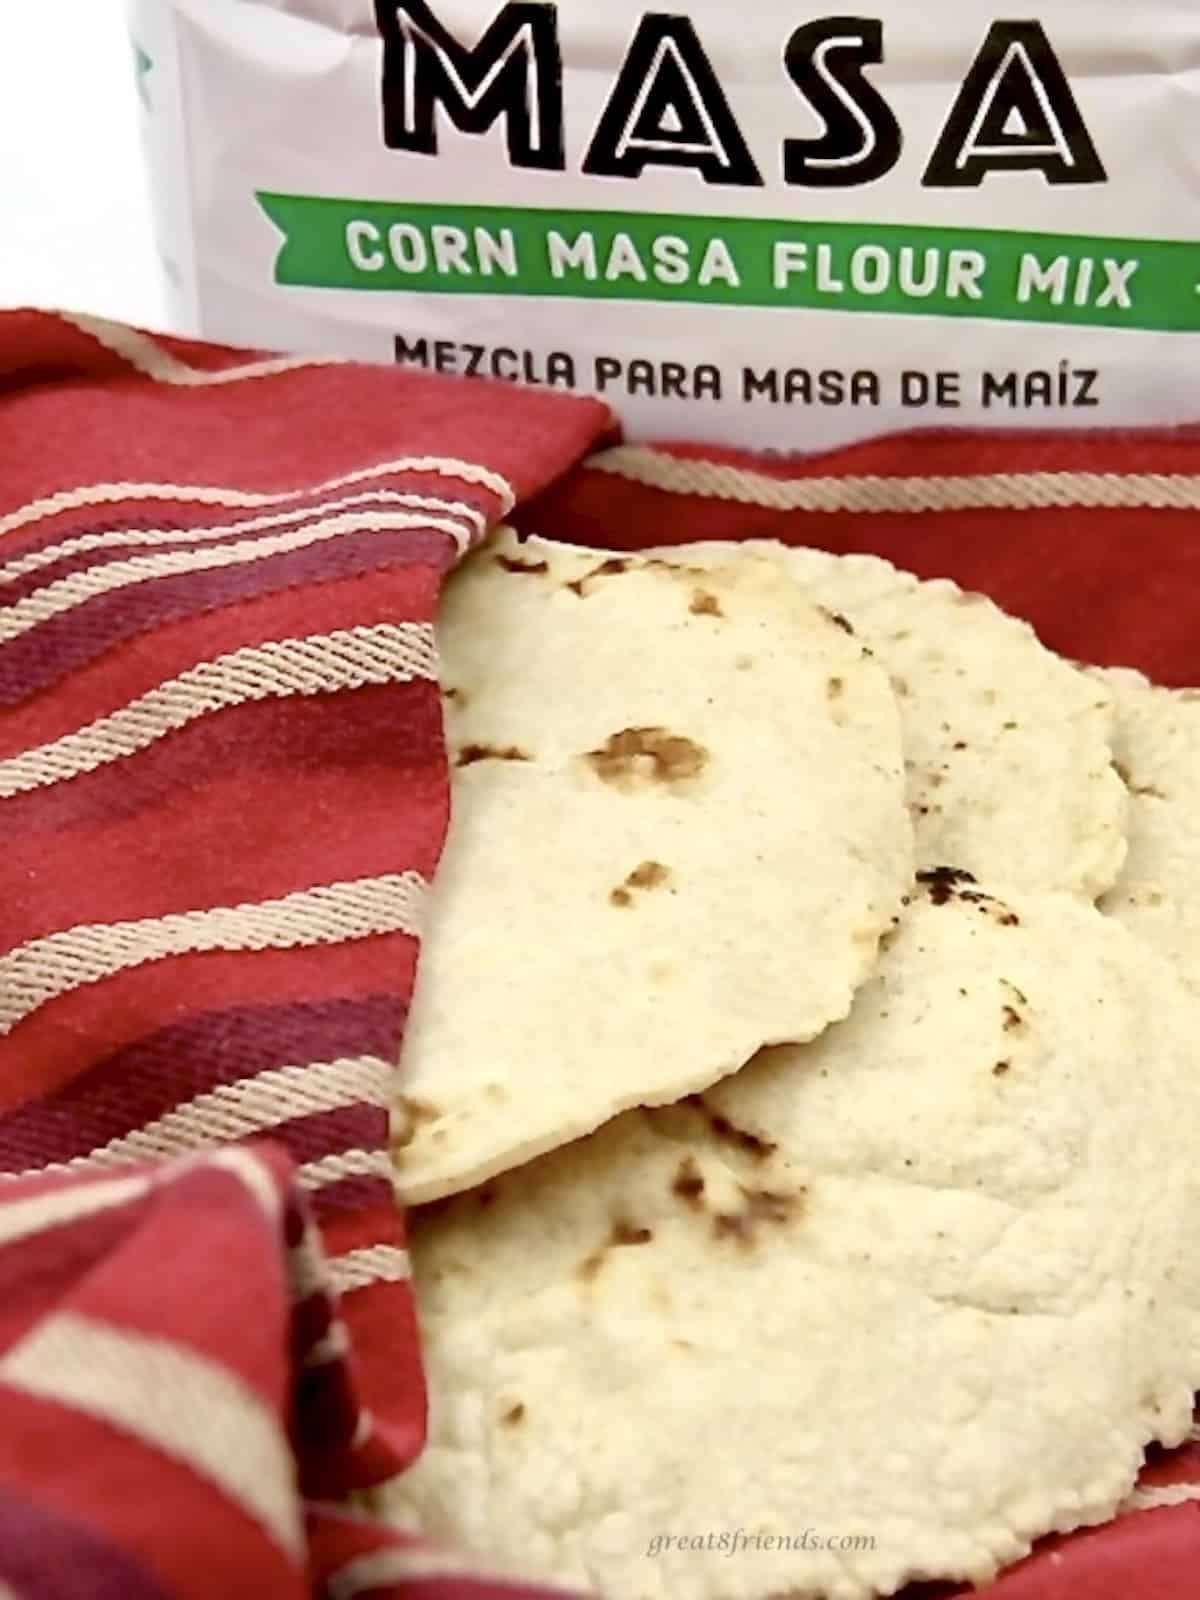 A red towel holding several corn handmade tortillas with a bag of masa flour mix in the background.